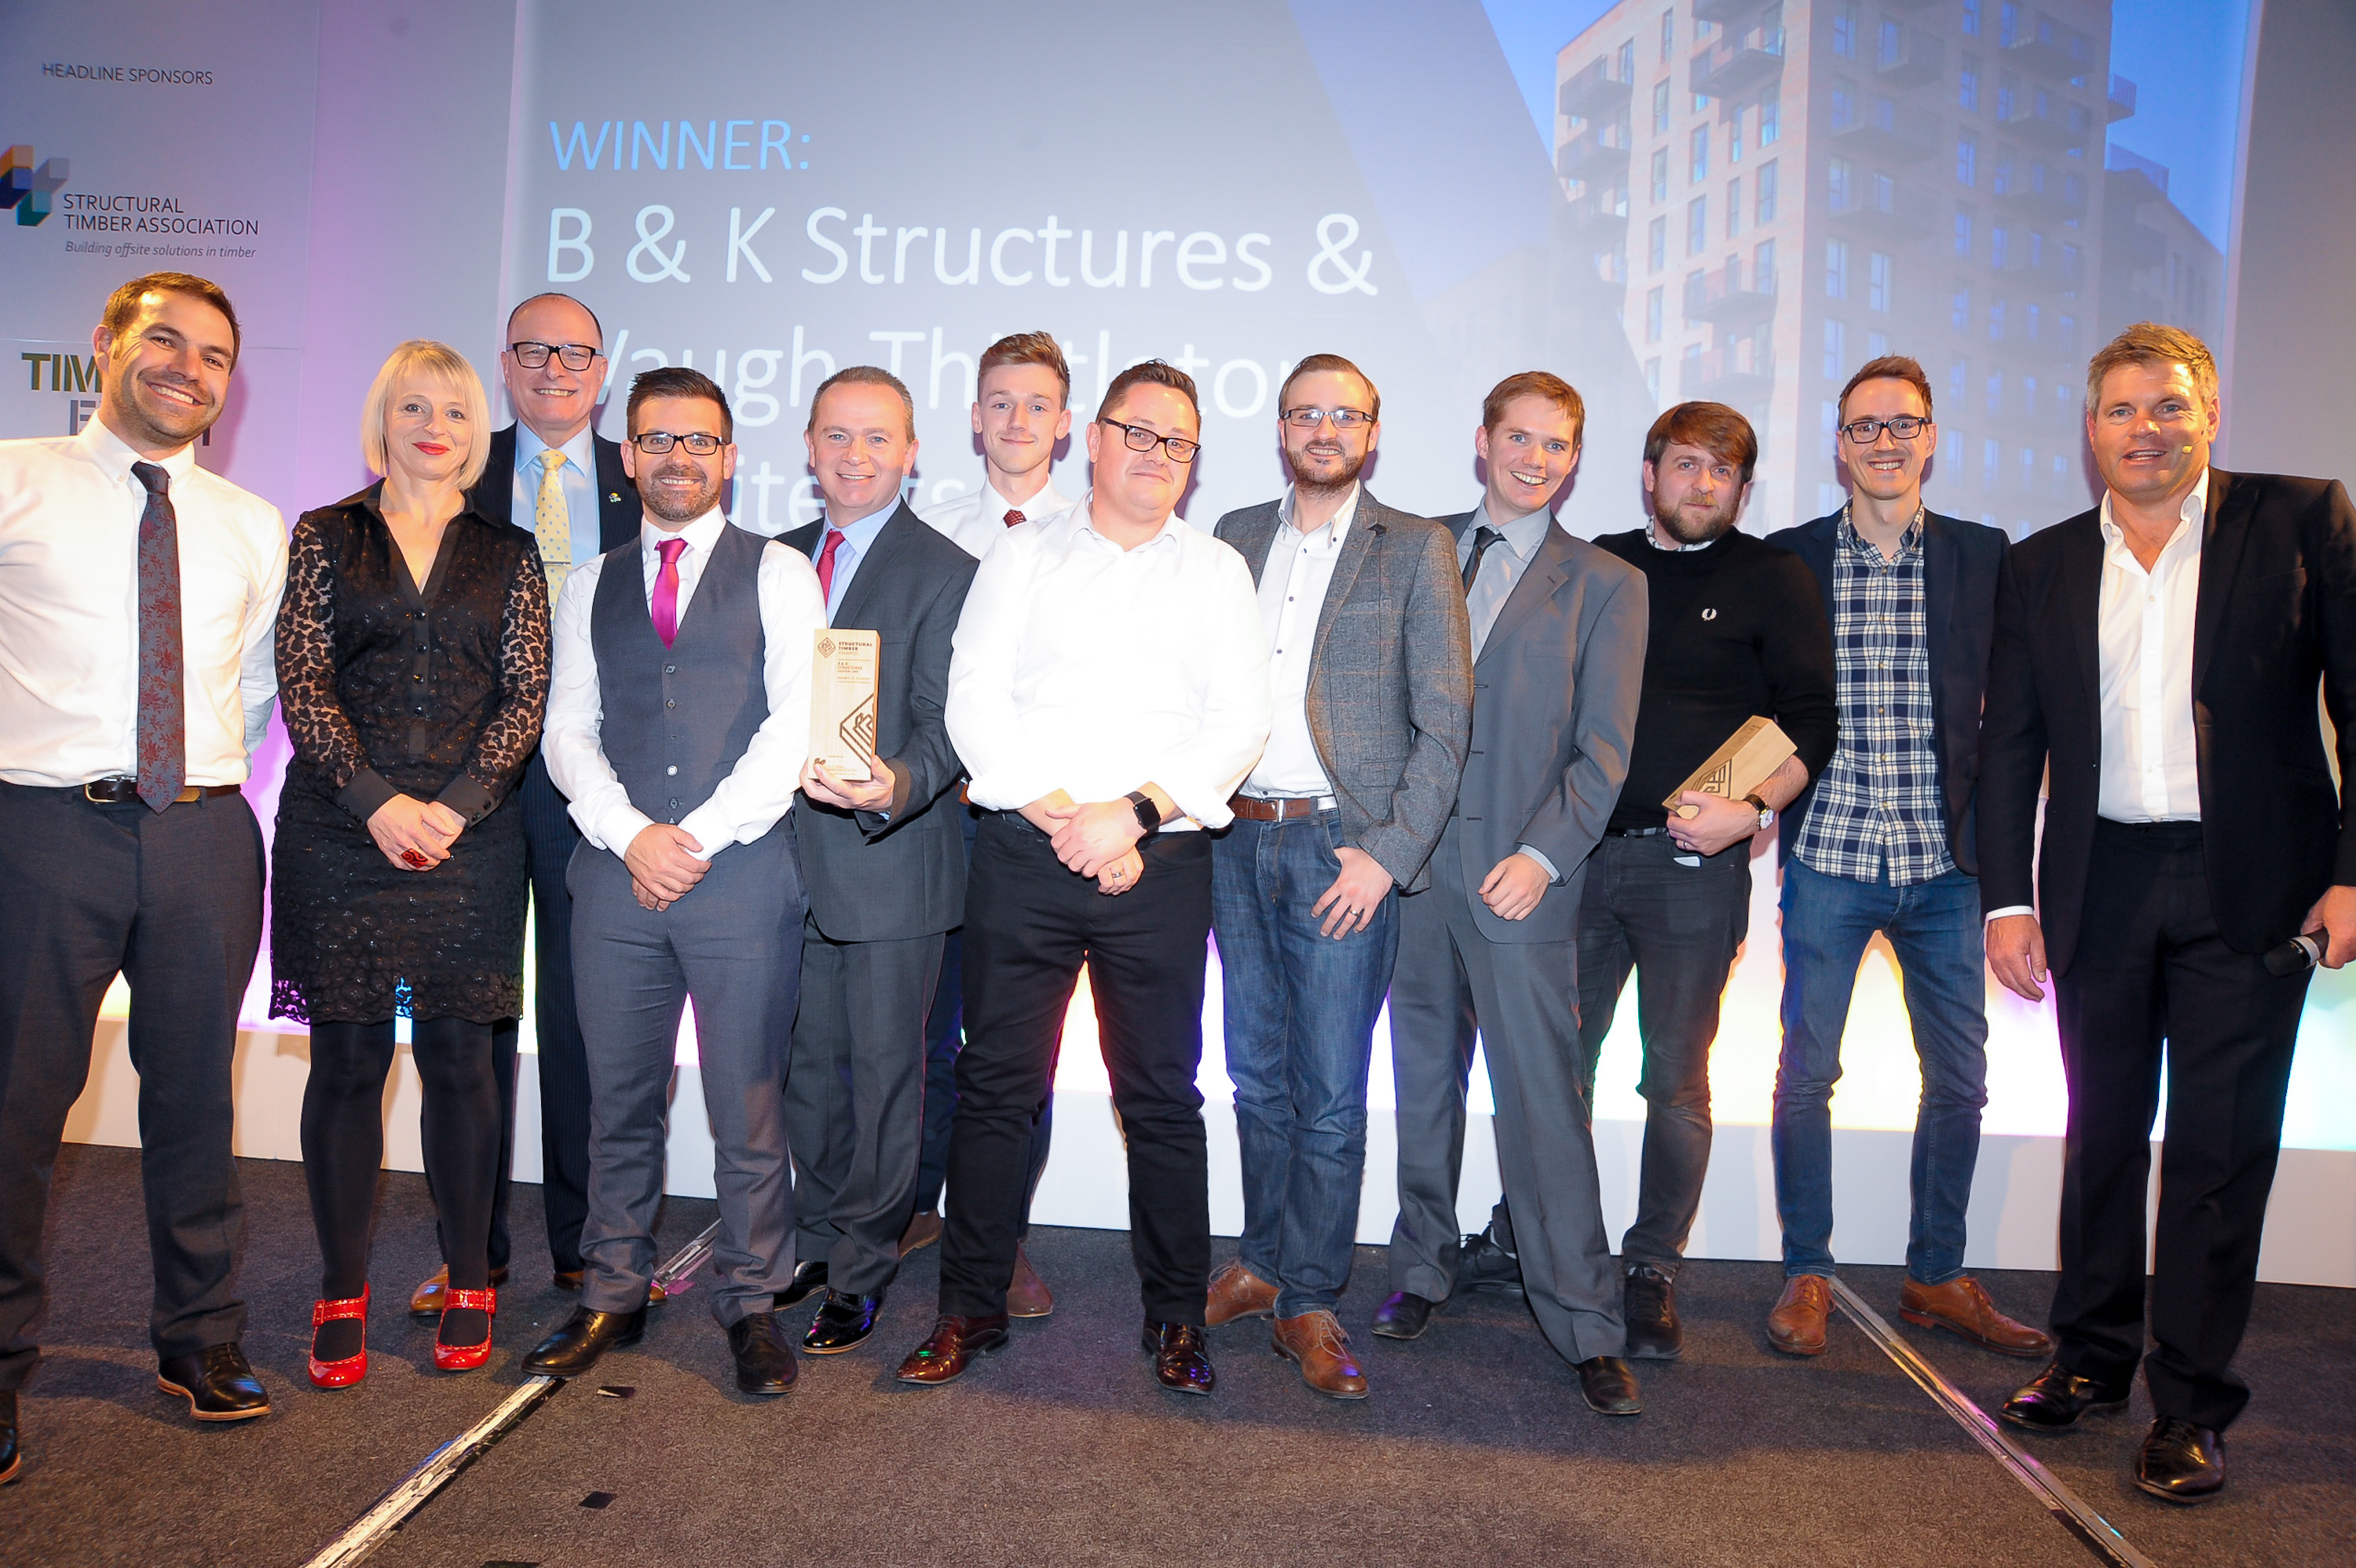 sta_awards_11.10.17___199_of_229_